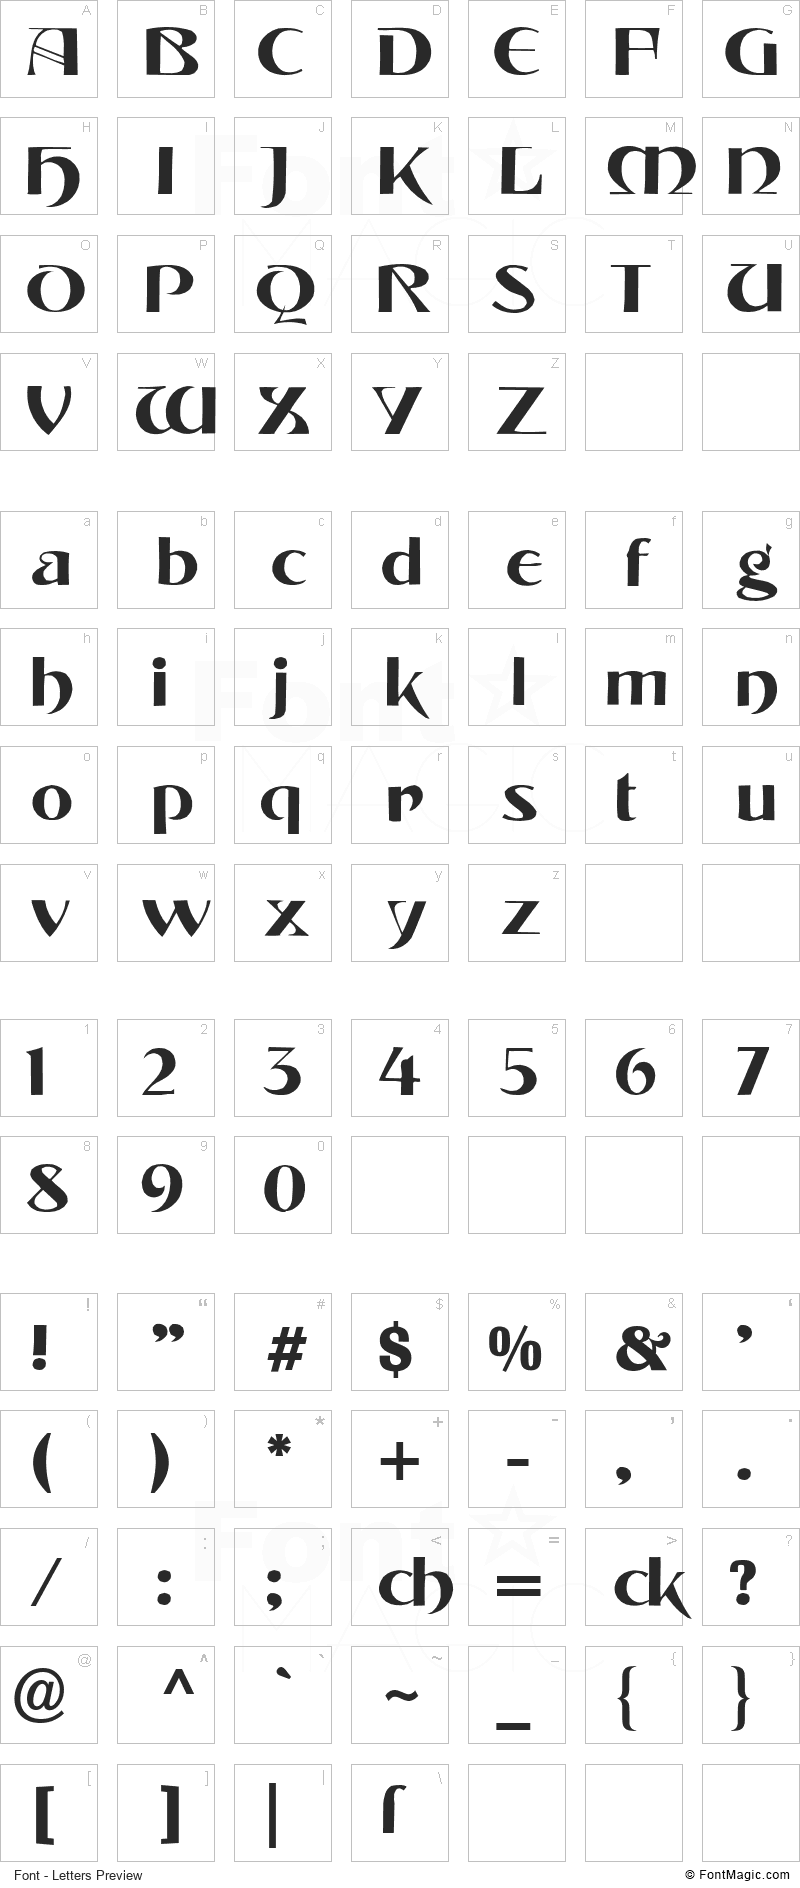 Tintoretto Font - All Latters Preview Chart